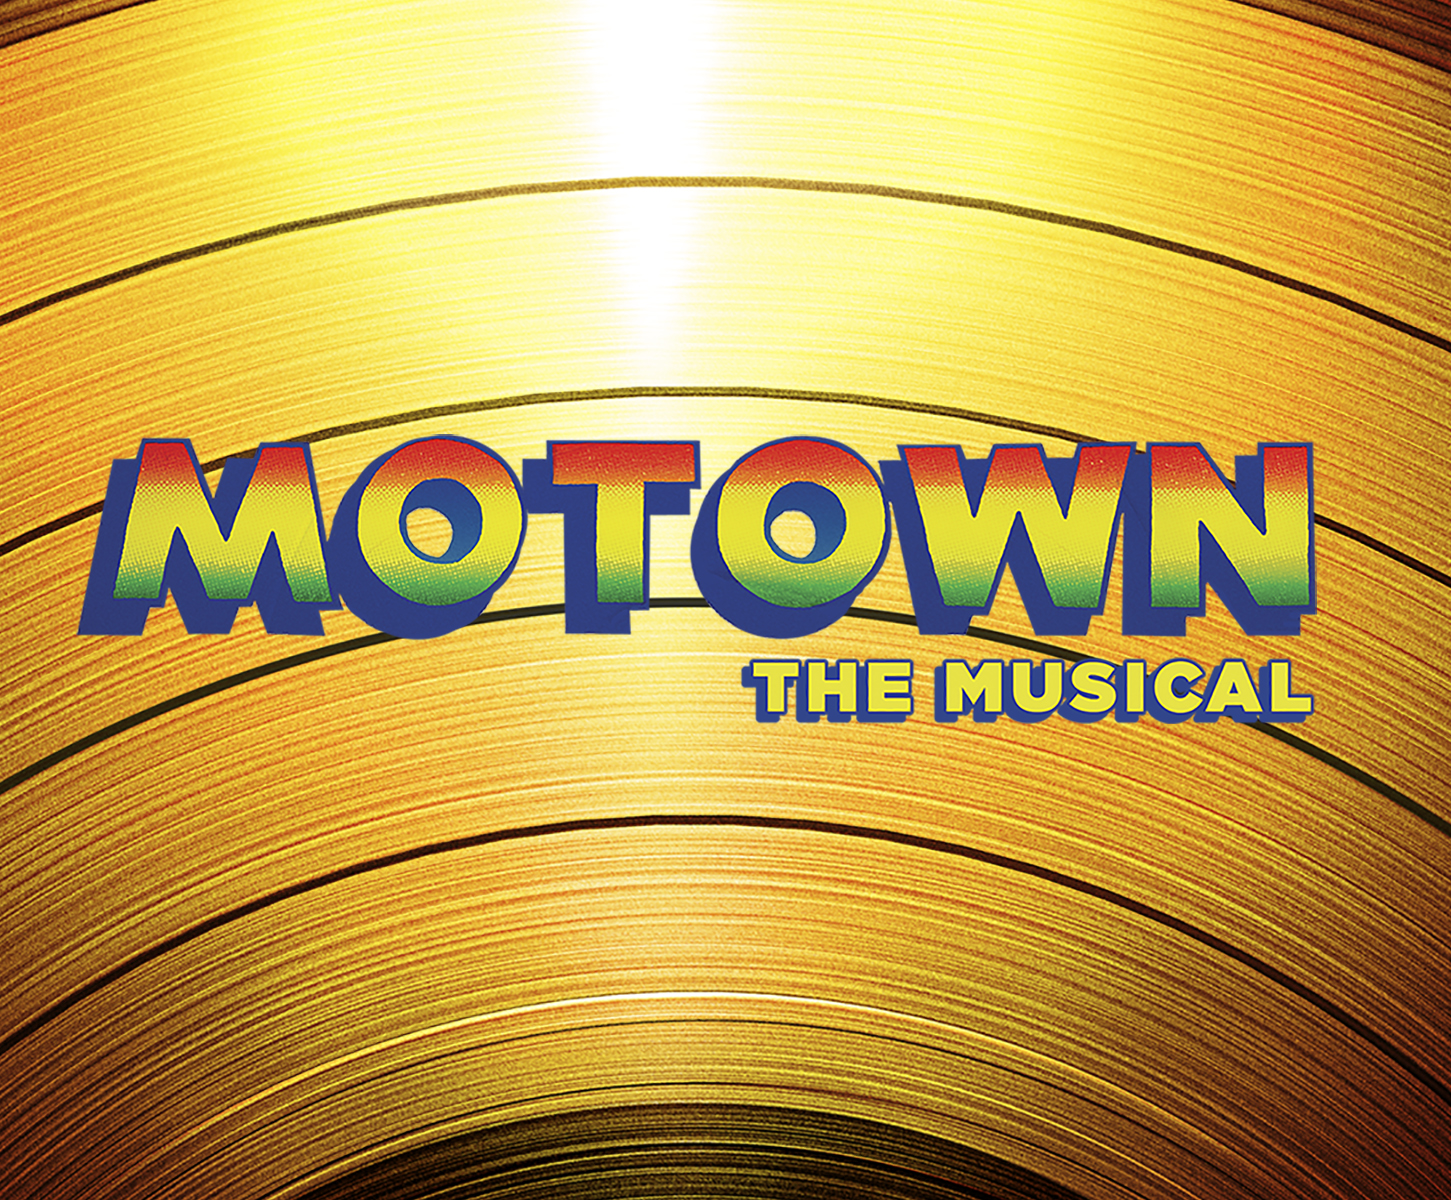 BWW Review: MOTOWN THE MUSICAL at Fisher Theatre is the Perfect Show for Detroit & Motown Music Fans!